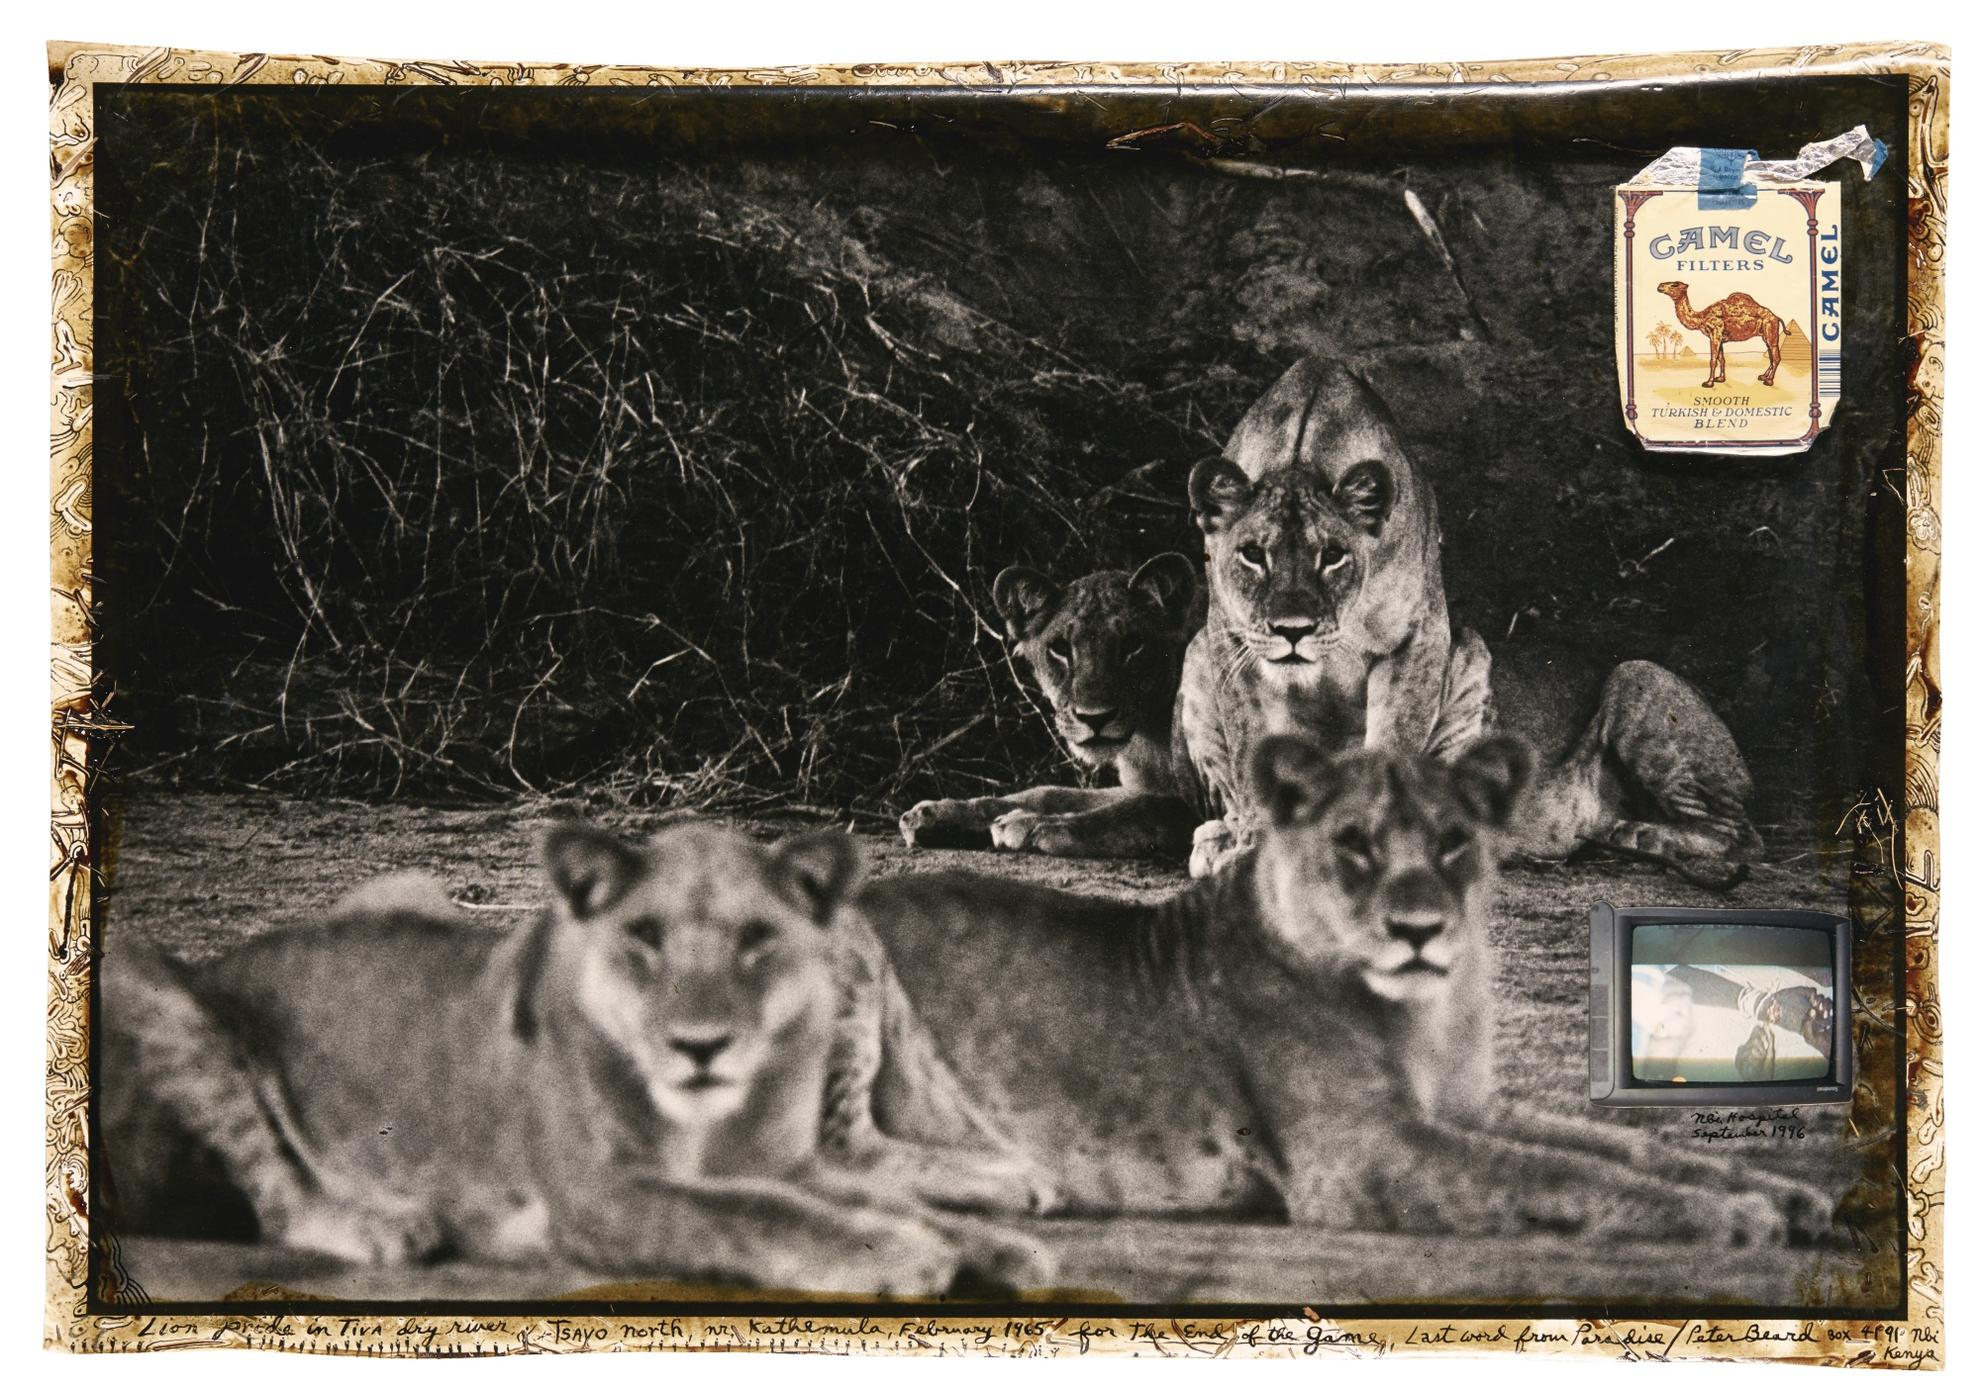 Peter Beard-Lion Pride In The Tiva Dry River, Tsavo North, Nr. Kathmula, February 1965-1965